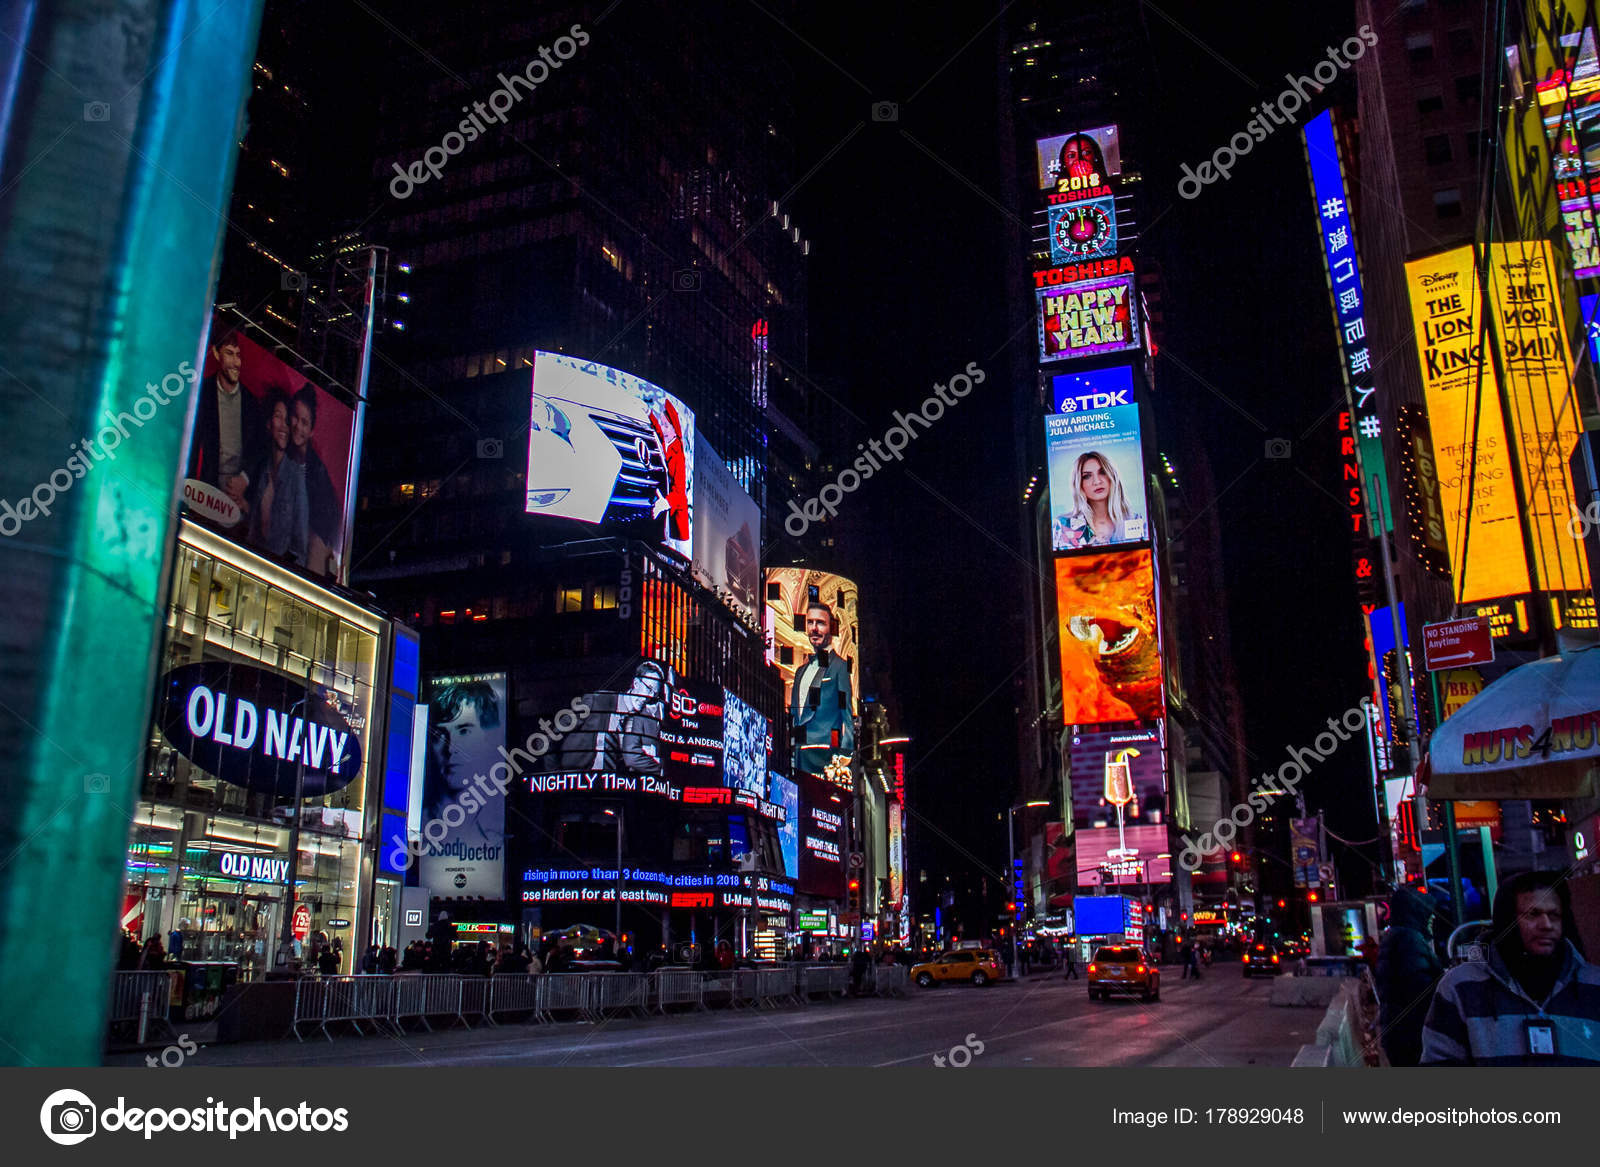 manhattan new york january 1 2018 happy new year 2018 clock graphic and advertising billboards on buildings at times square in nighttime photo by